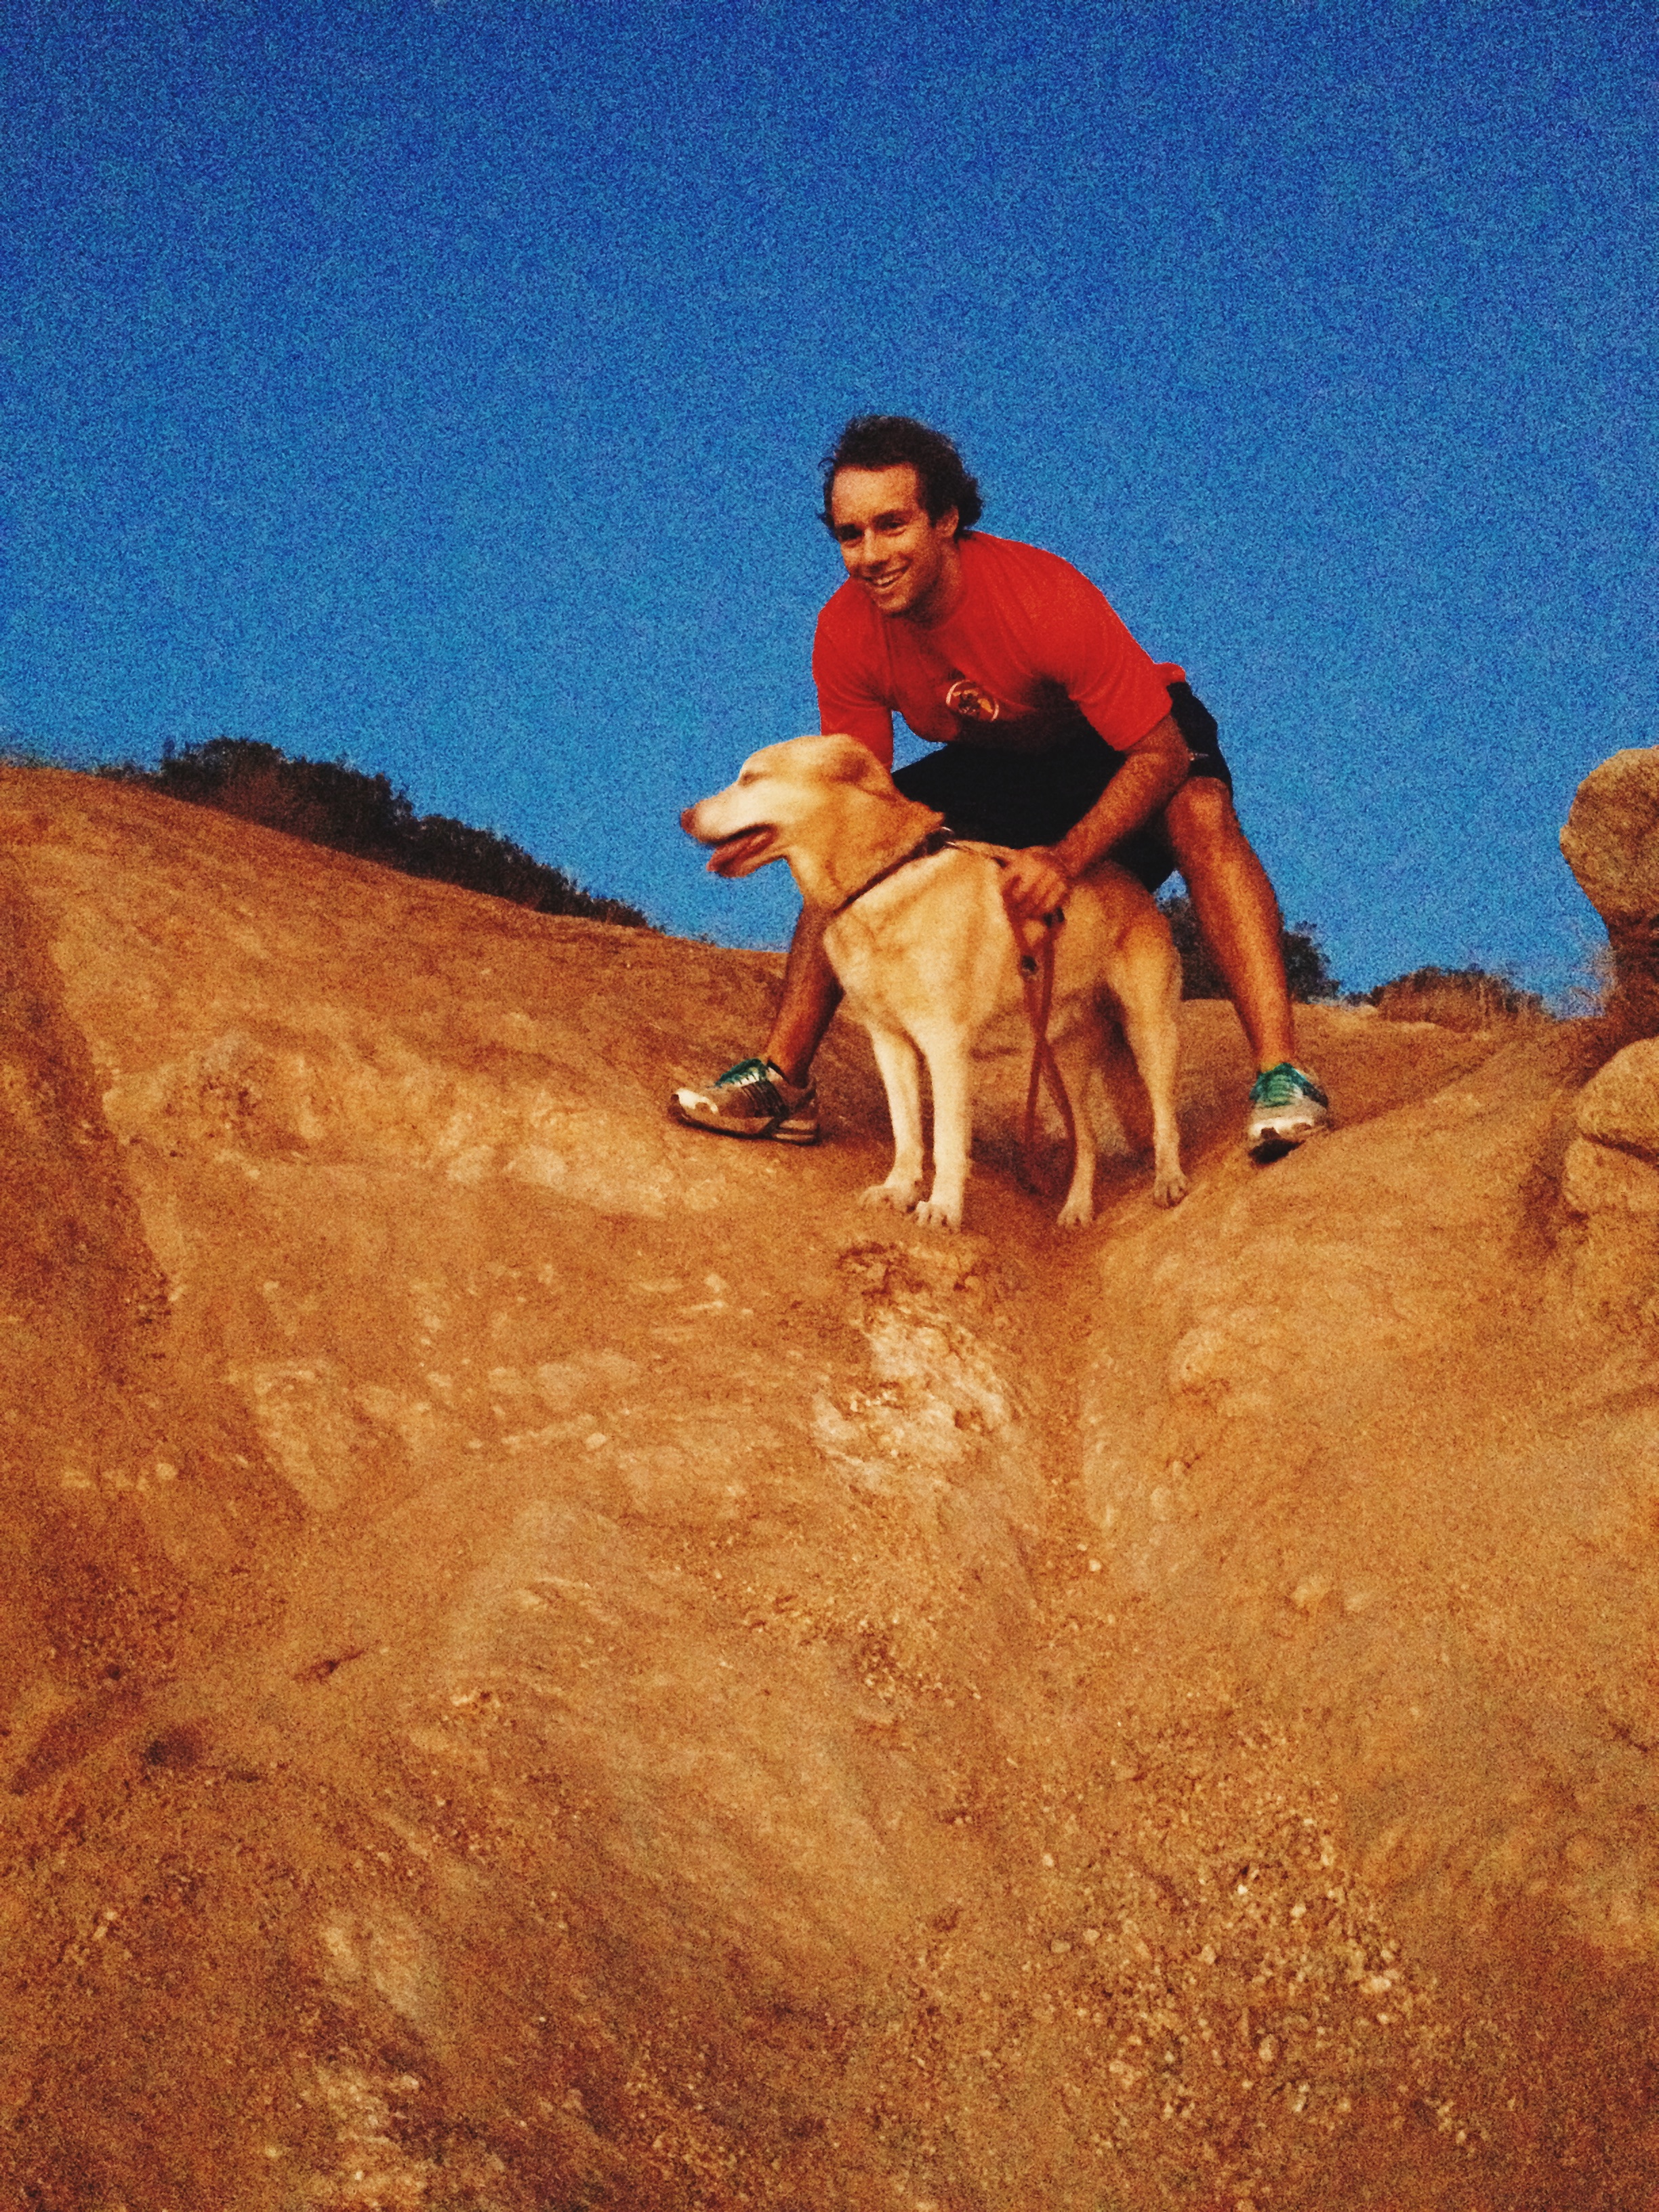 Daveykins and Kaya on our run/hike/all round adventure